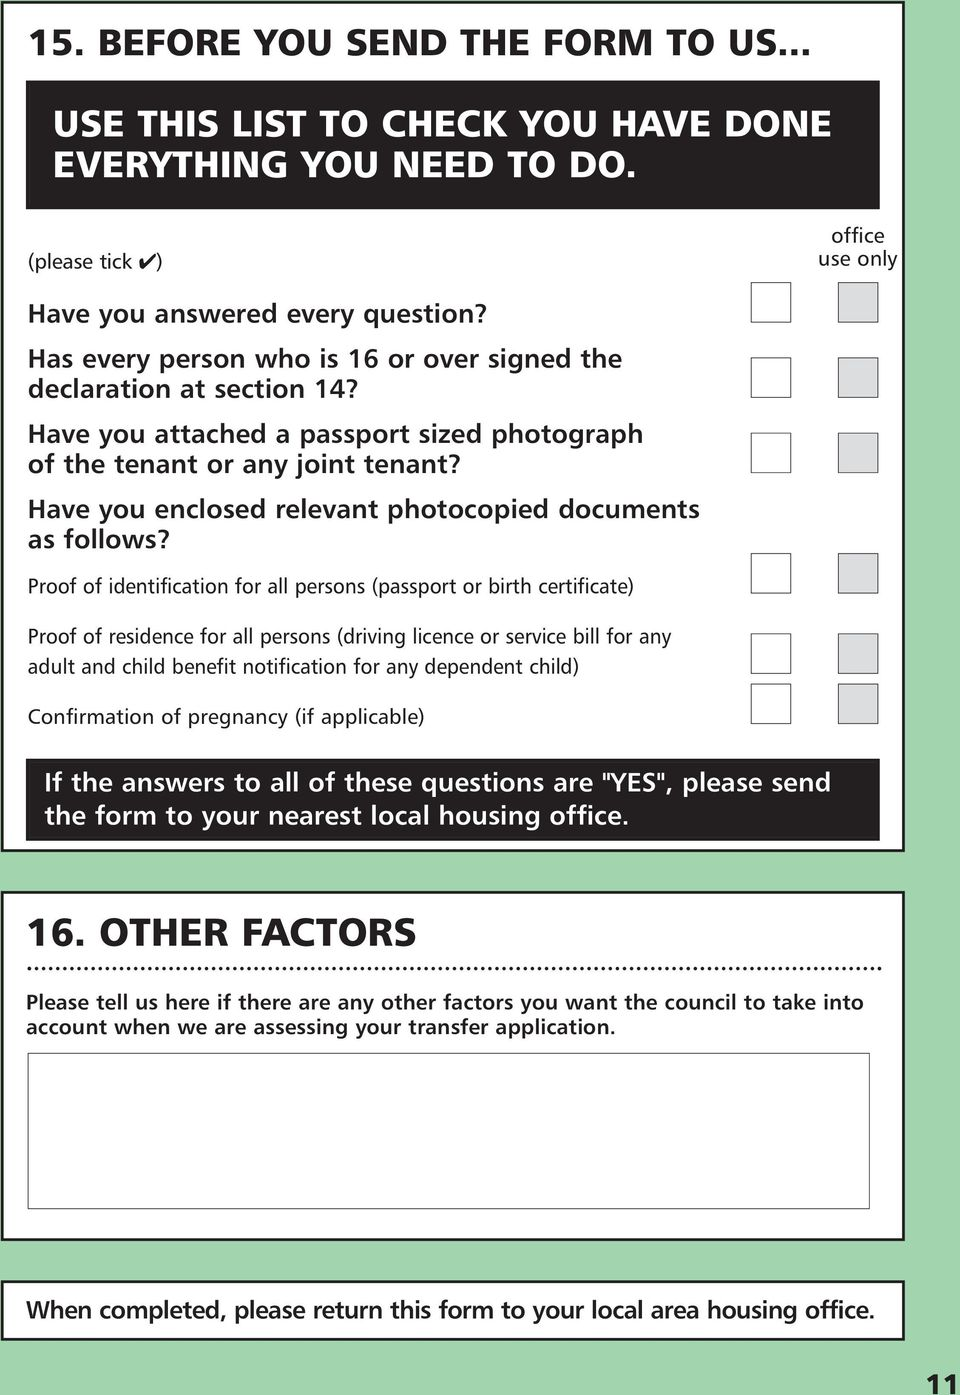 Have you enclosed relevant photocopied documents as follows?